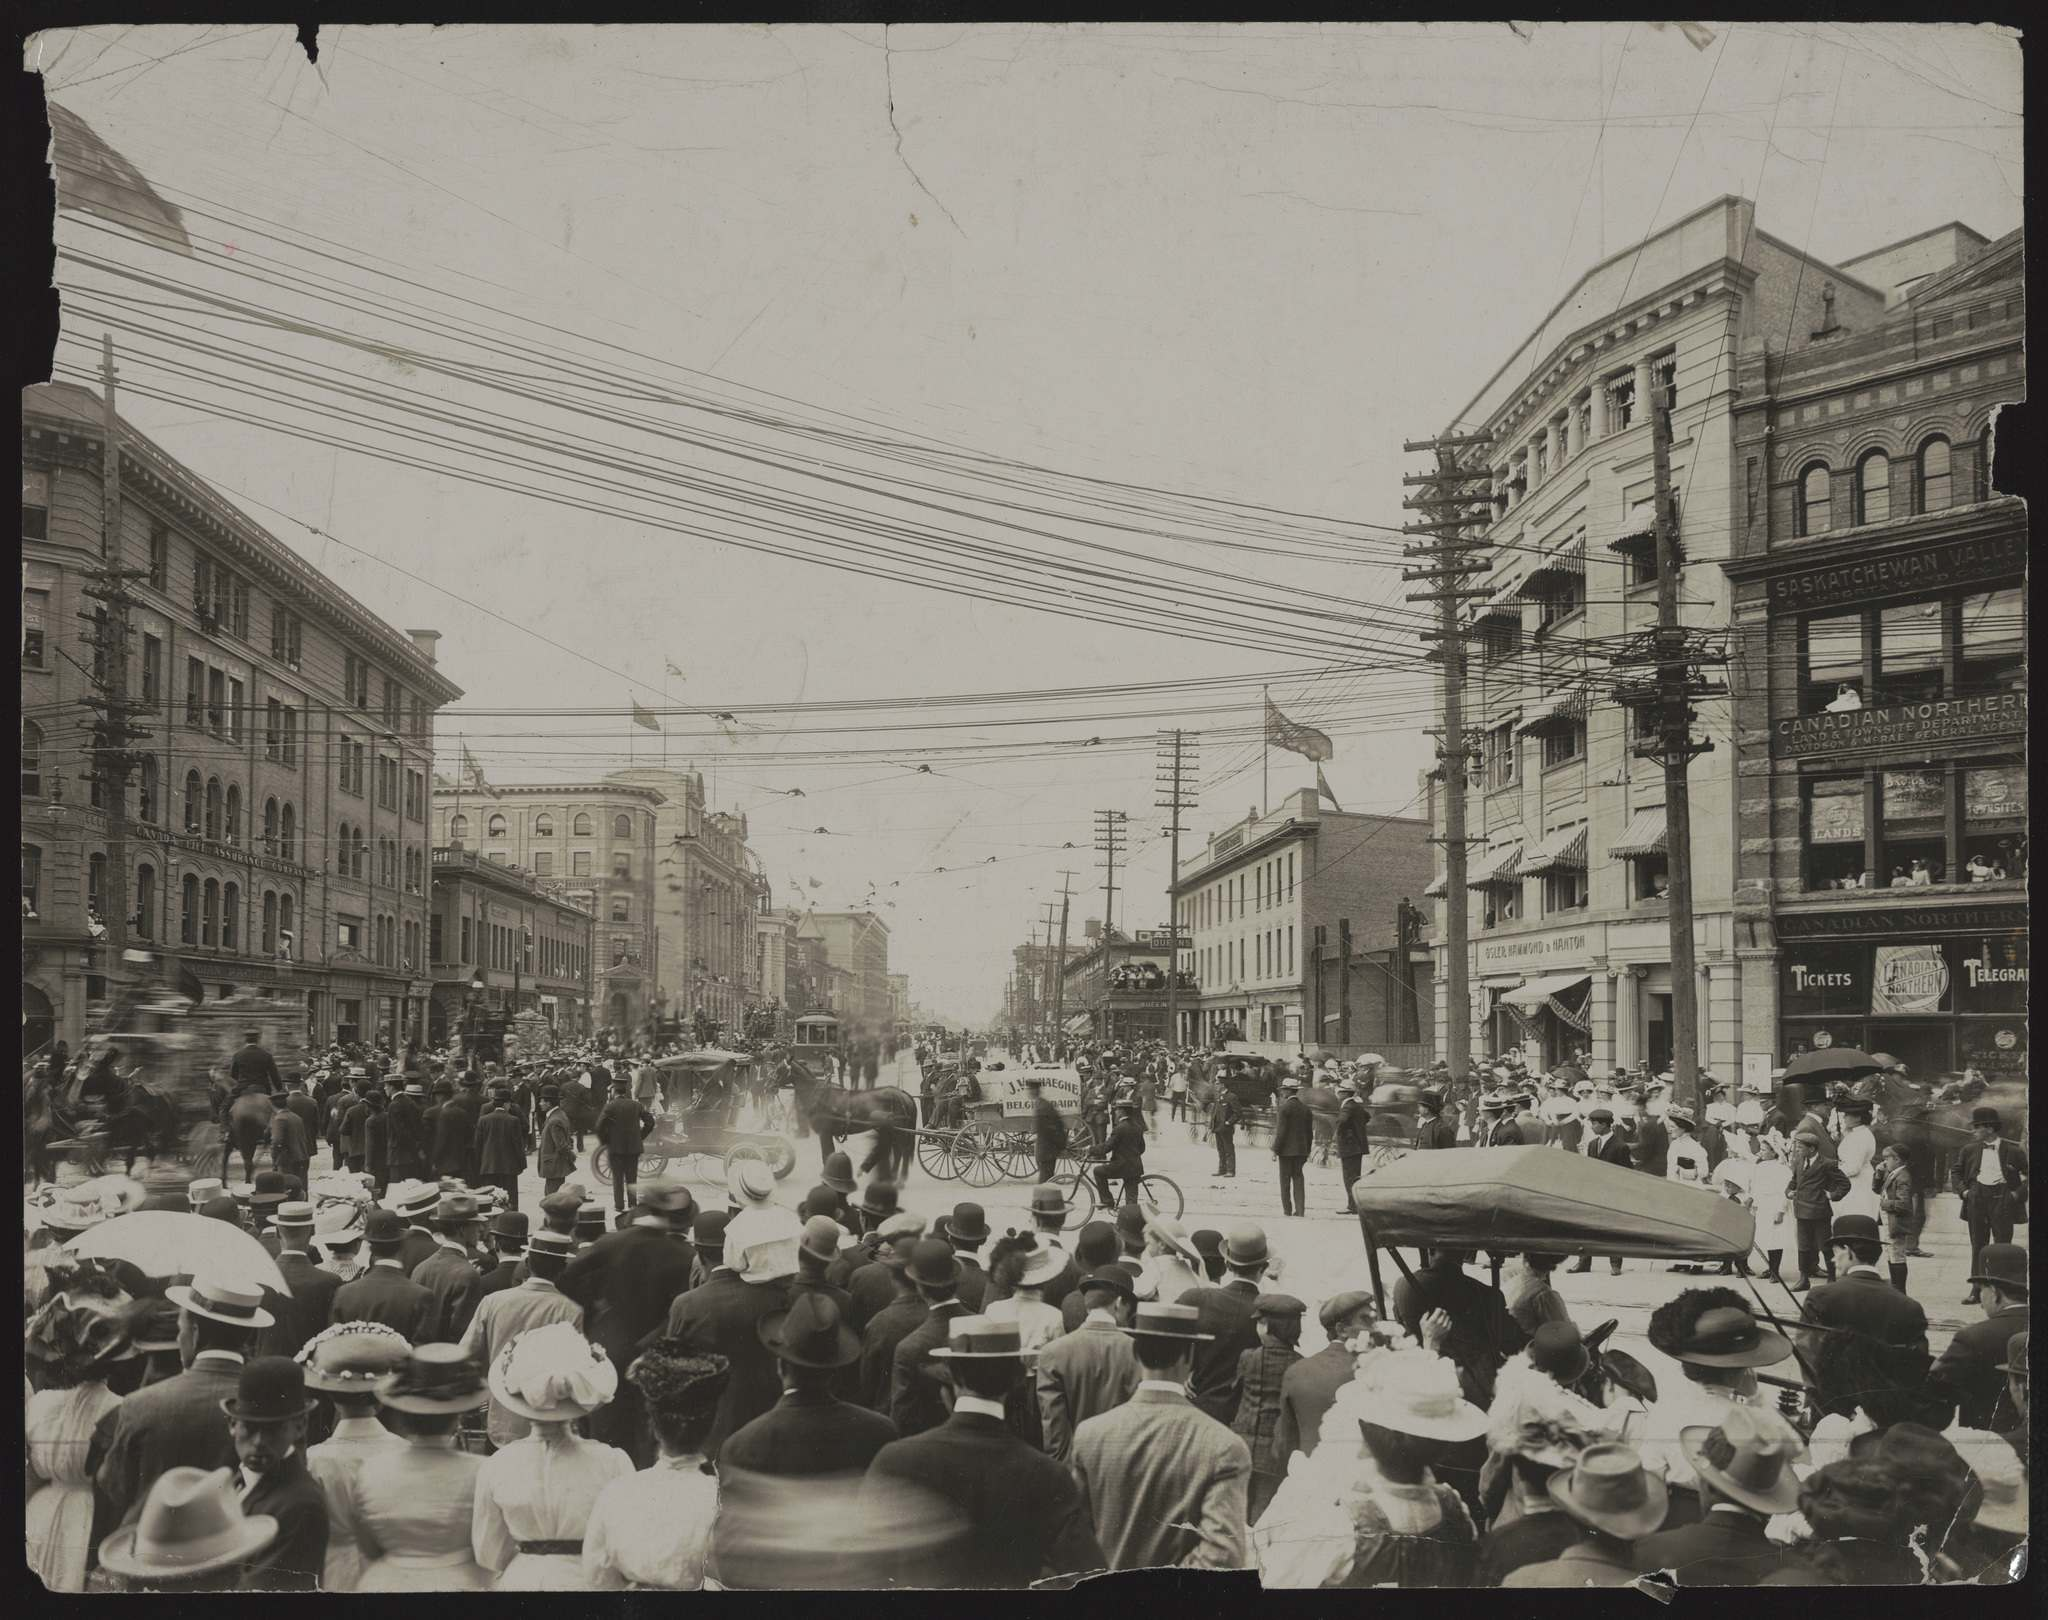 Portage and Main was a hot spot during the 1919 General Strike. (Winnipeg Free Press files)</p>